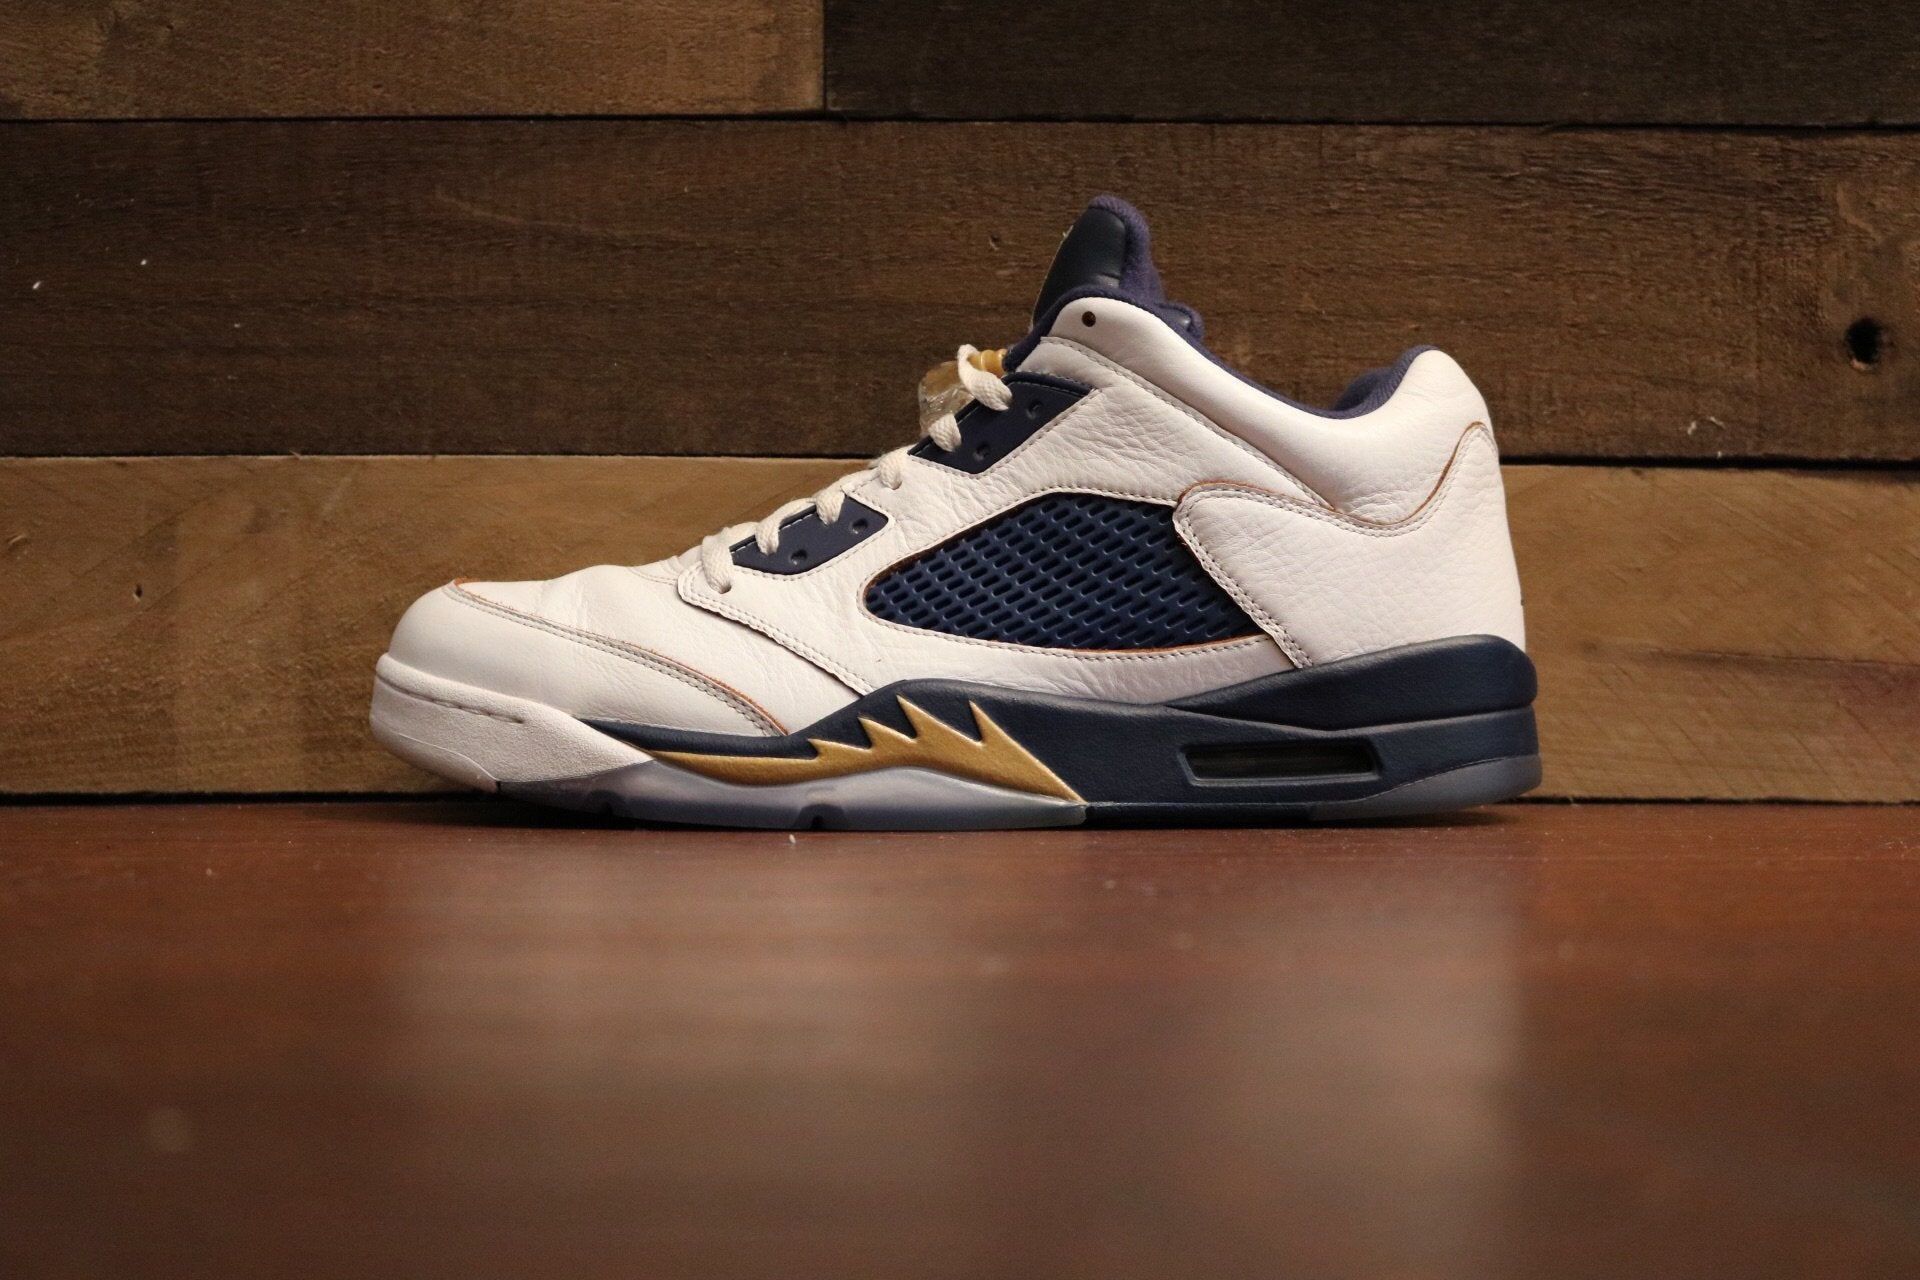 the best attitude 079bc 49331 Jordan 5 Retro Low Dunk From Above